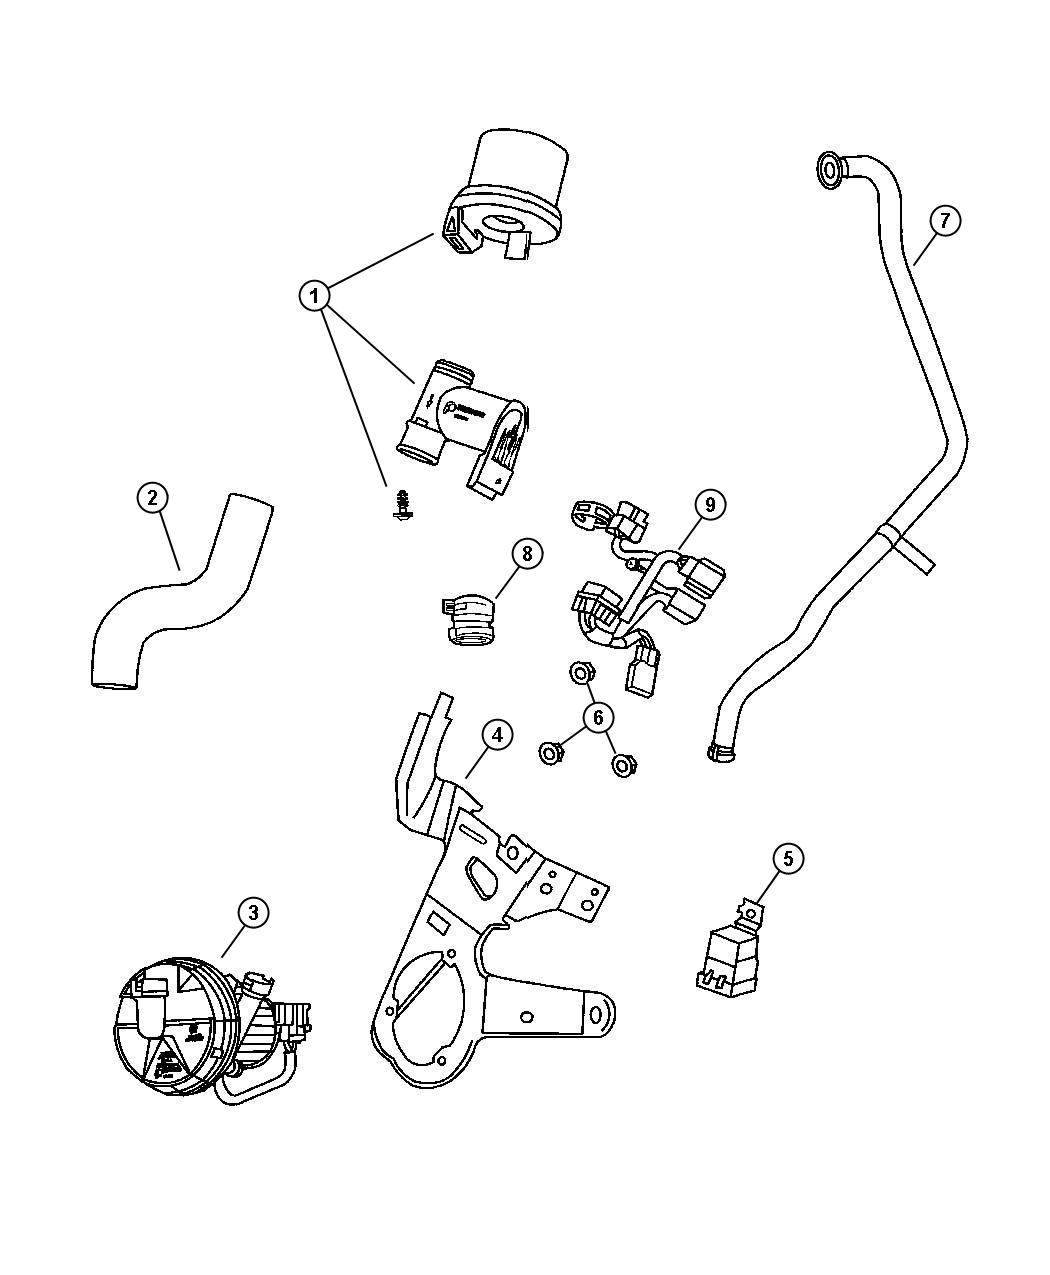 Dodge Ram Pump Air Injection Engine System